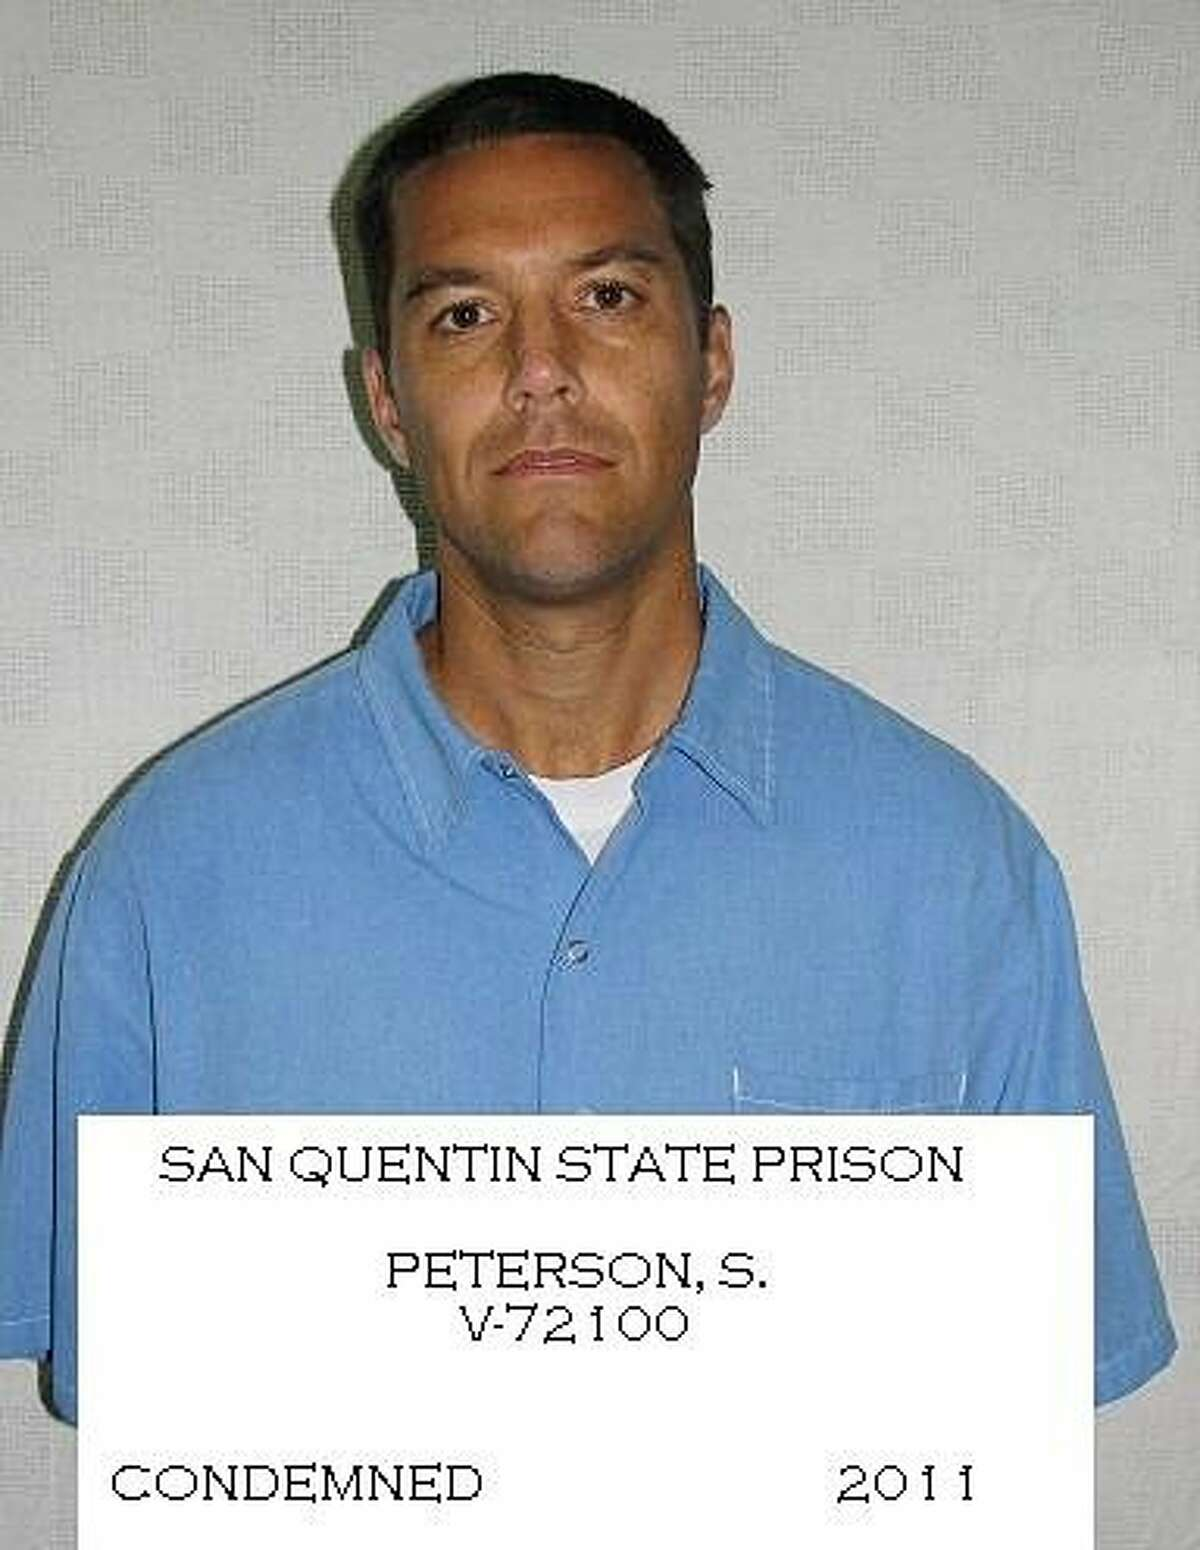 File - Shown in this 2011 file photo released by the California Dept. of Corrections is Scott Peterson who is on death row at San Quentin State Prison. Eight years after he was sentenced to death for the murders of his wife and unborn son, Peterson has filed an automatic appeal to the California Supreme Court. (AP Photo/Calif. Dept. of Corrections, File)